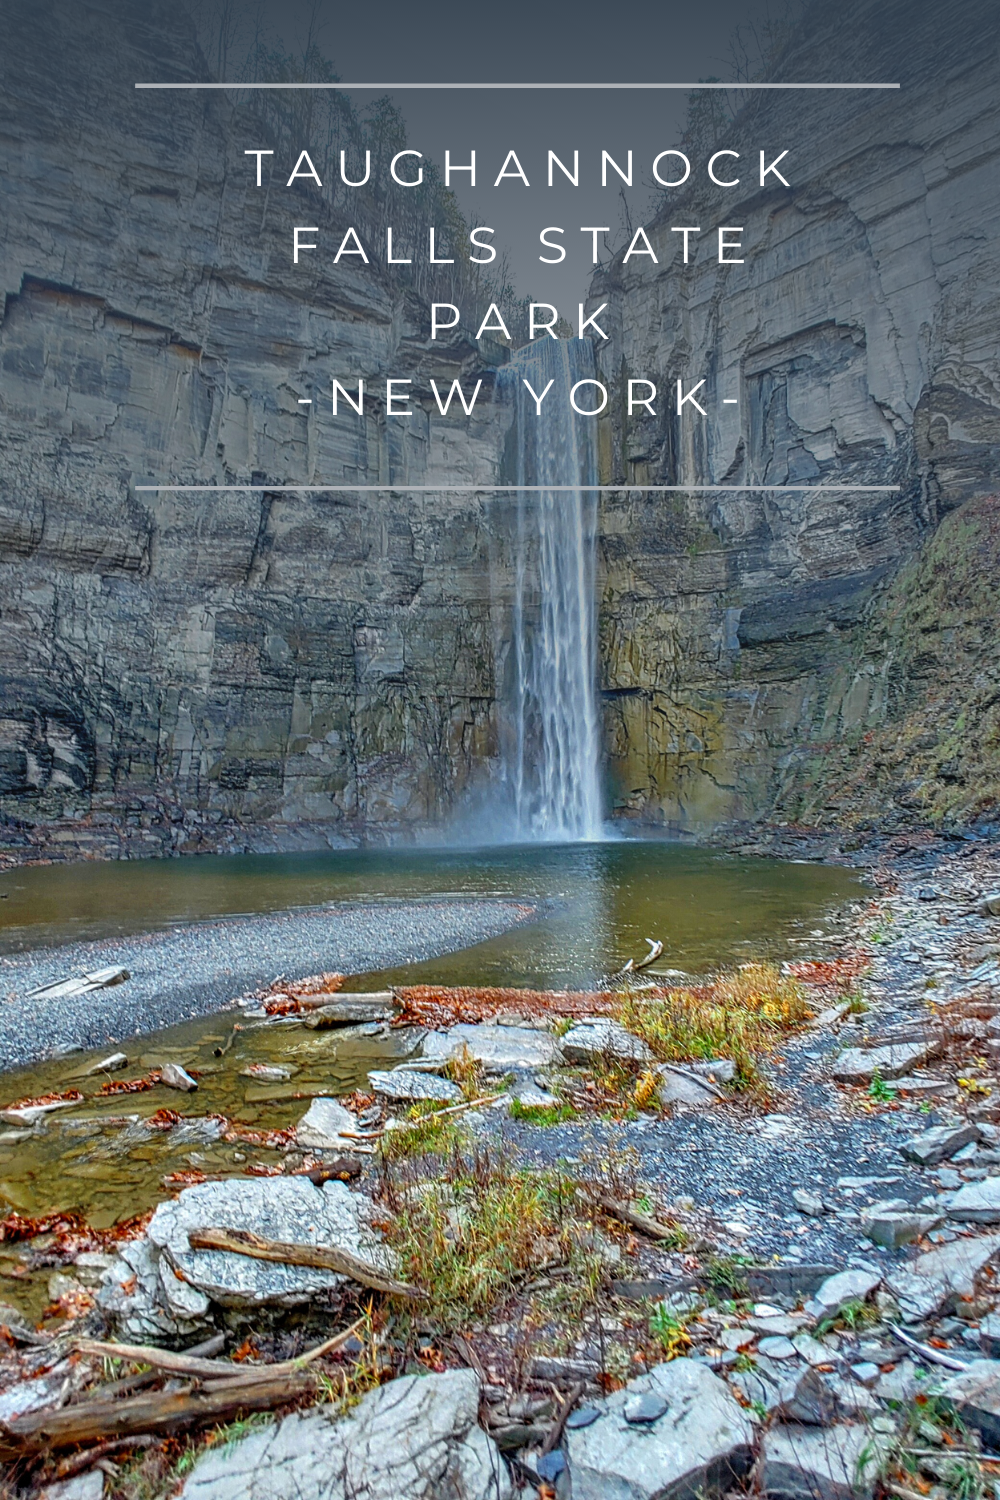 Taughannock Falls State Park located just outside of Ithaca offers plenty of hiking trails and three main water fall views. Discover all this park has to offer!